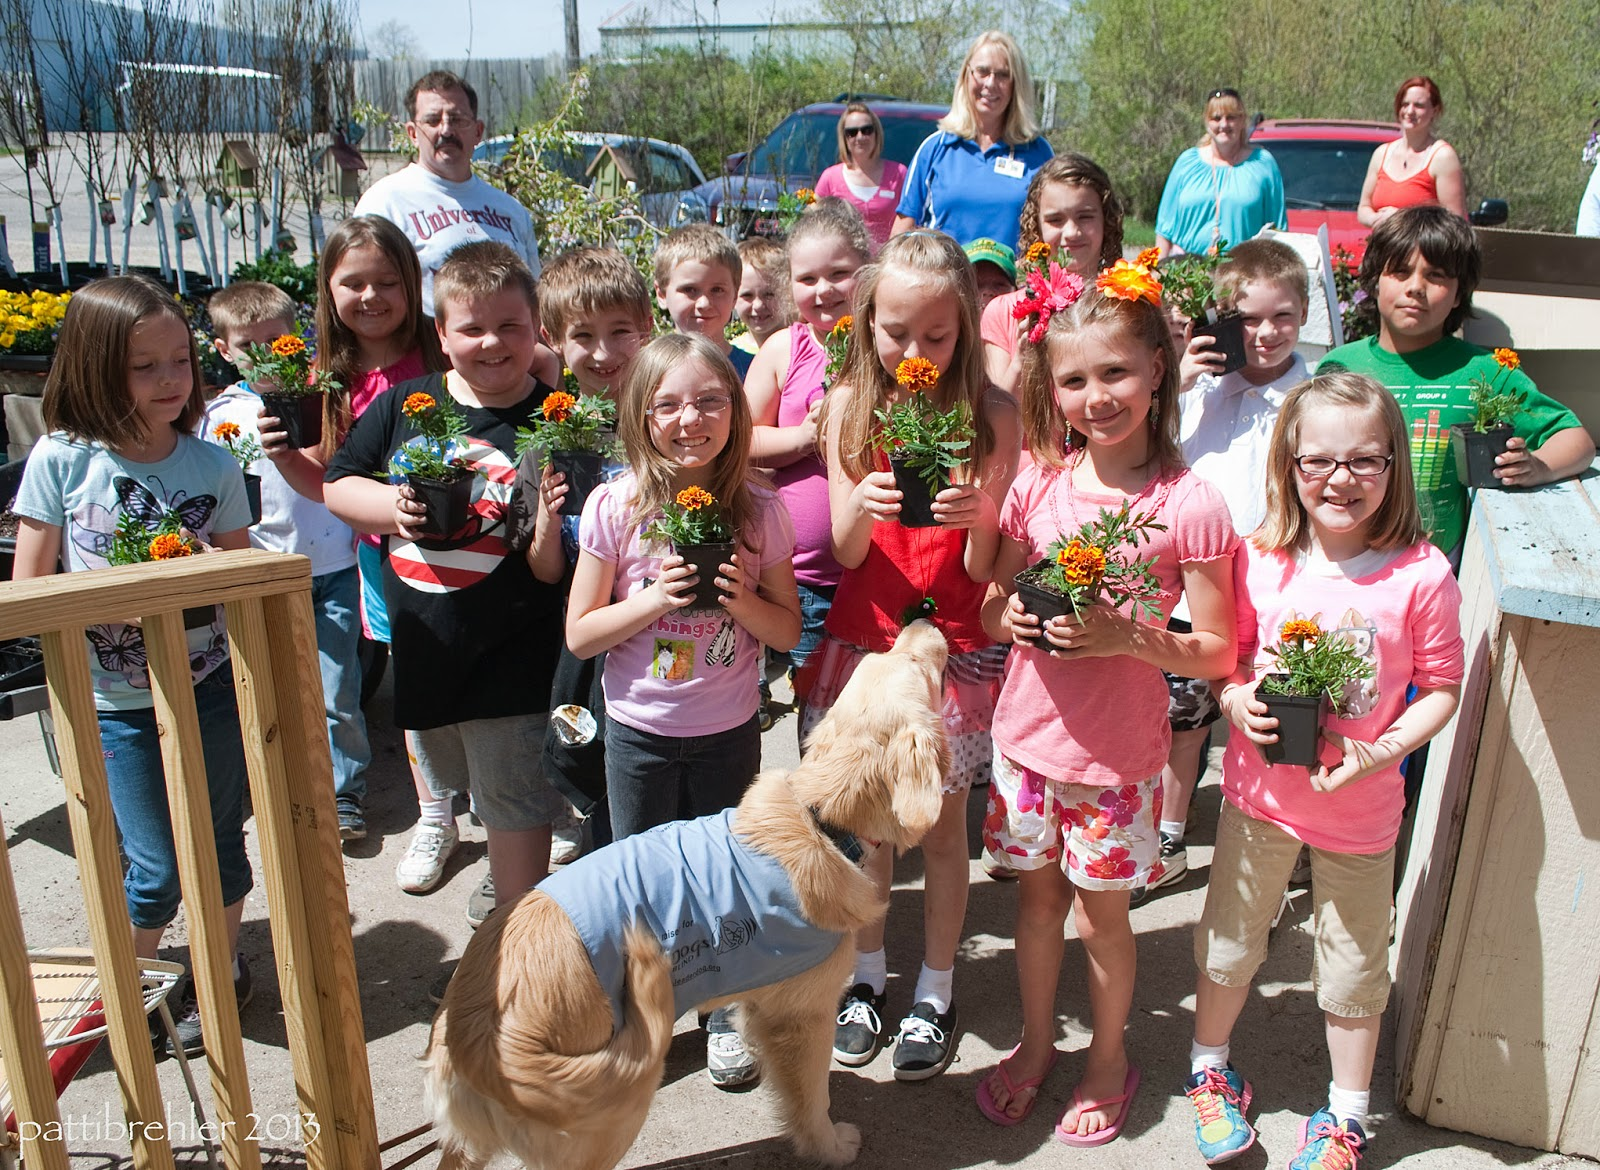 A large gorup of second graders pose outside in the sun with a golden retriever, who is standing in front of them looking at them and not the camera. All the children are holding marigolds that they had potted for their mothers for mother's day. There are five adults (one man and four women) standing in the background.